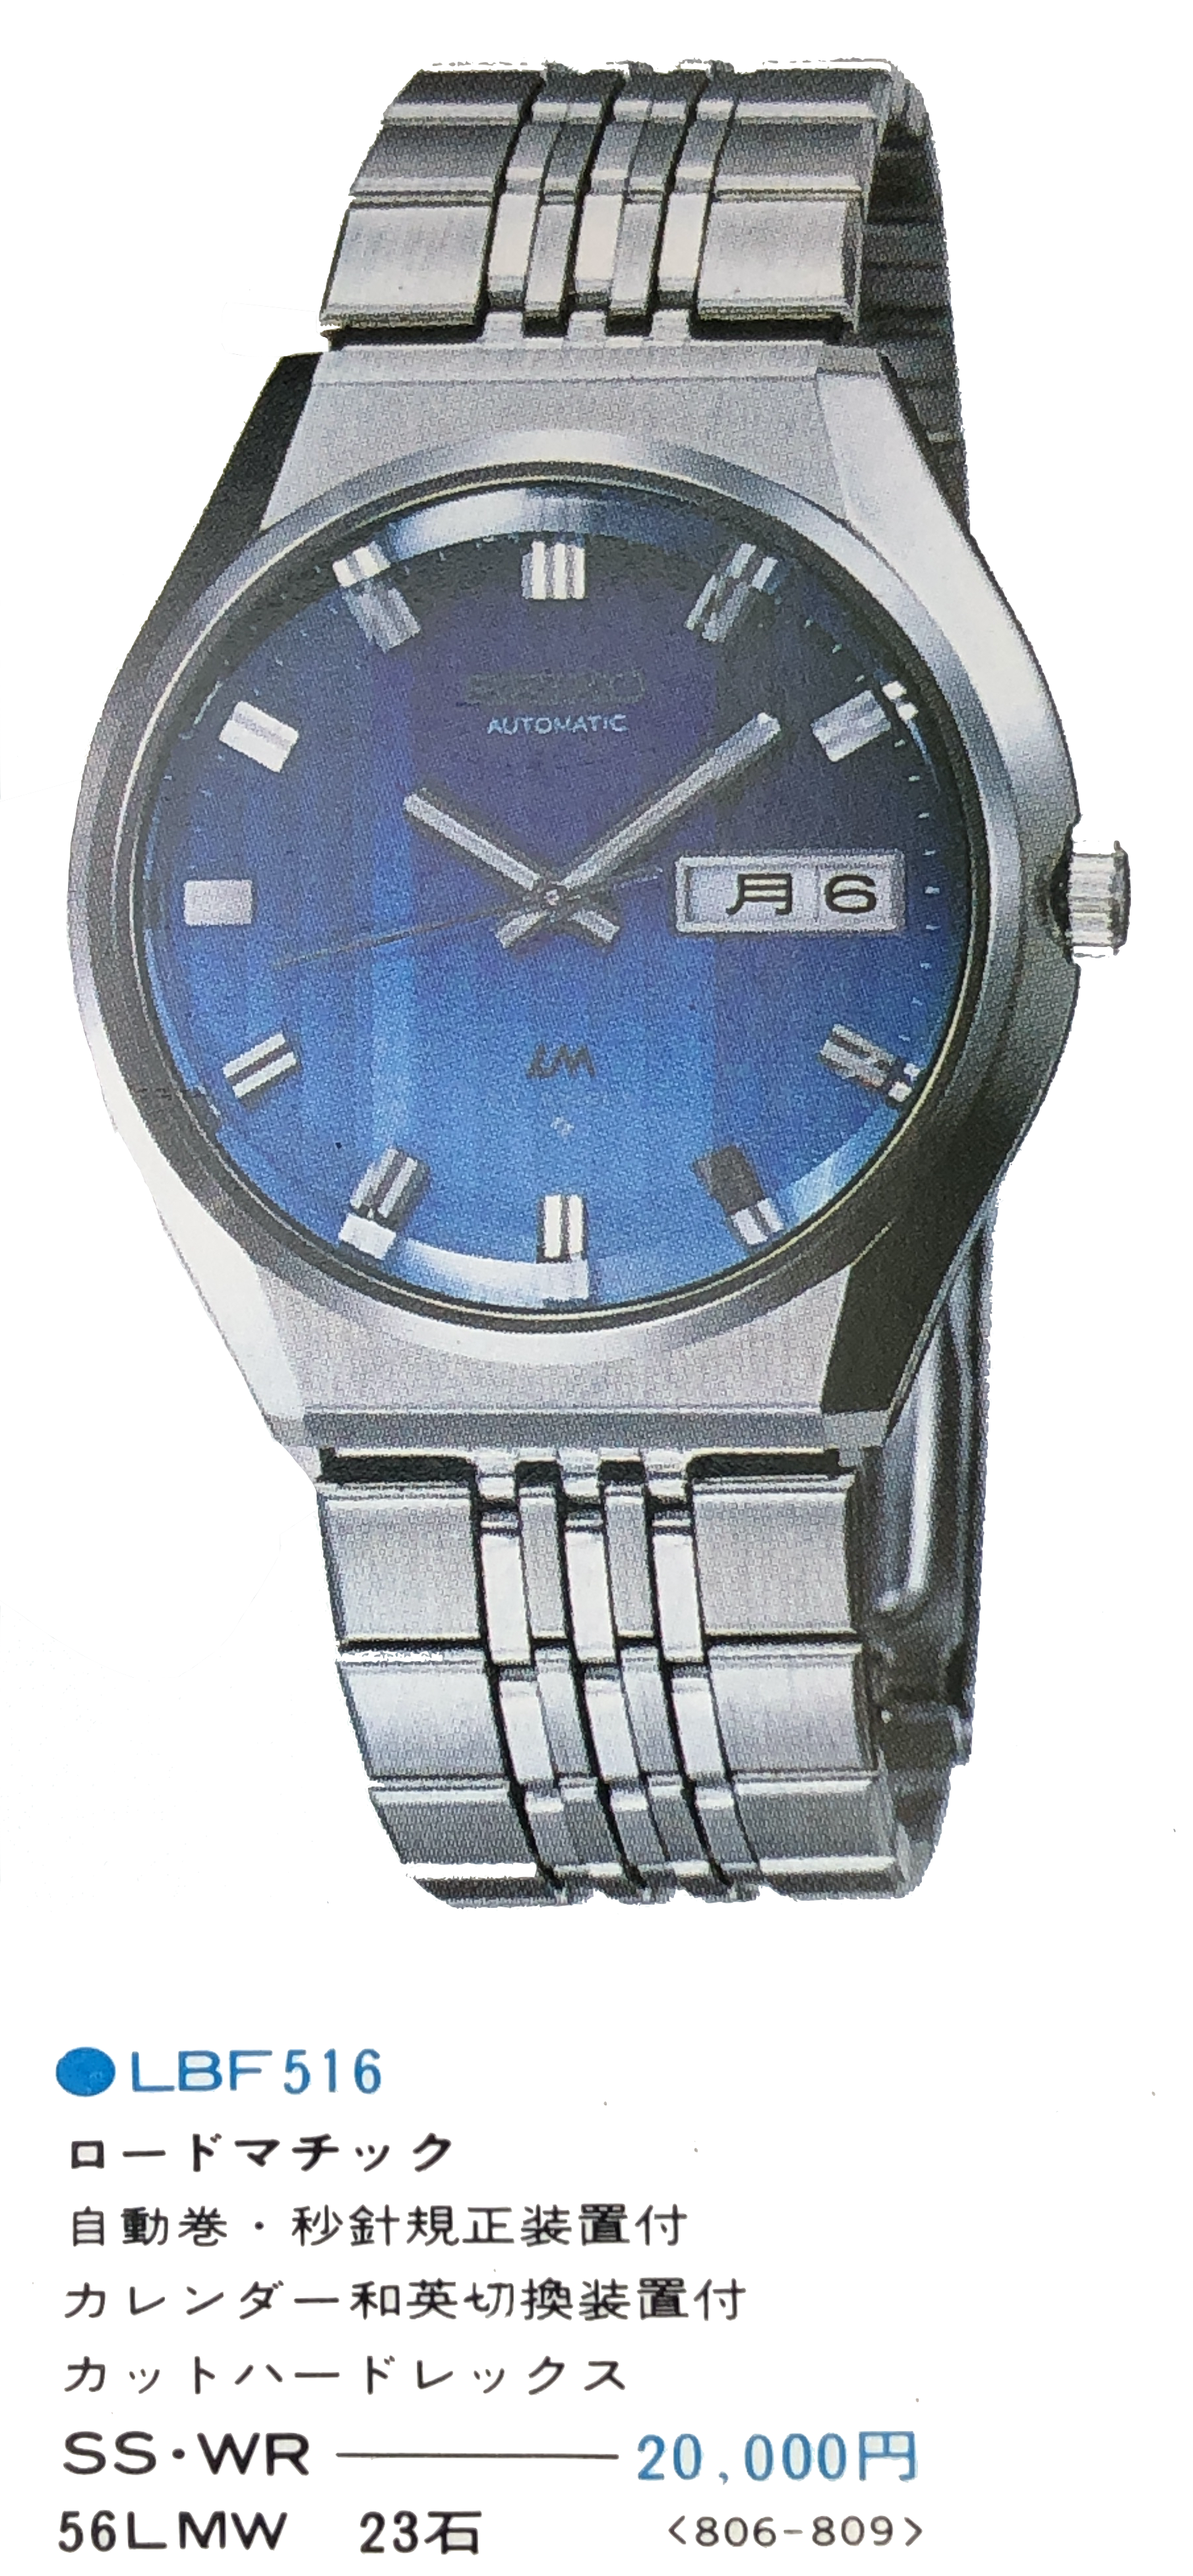 Seiko Lord-Matic 5606-8061 (Incoming)